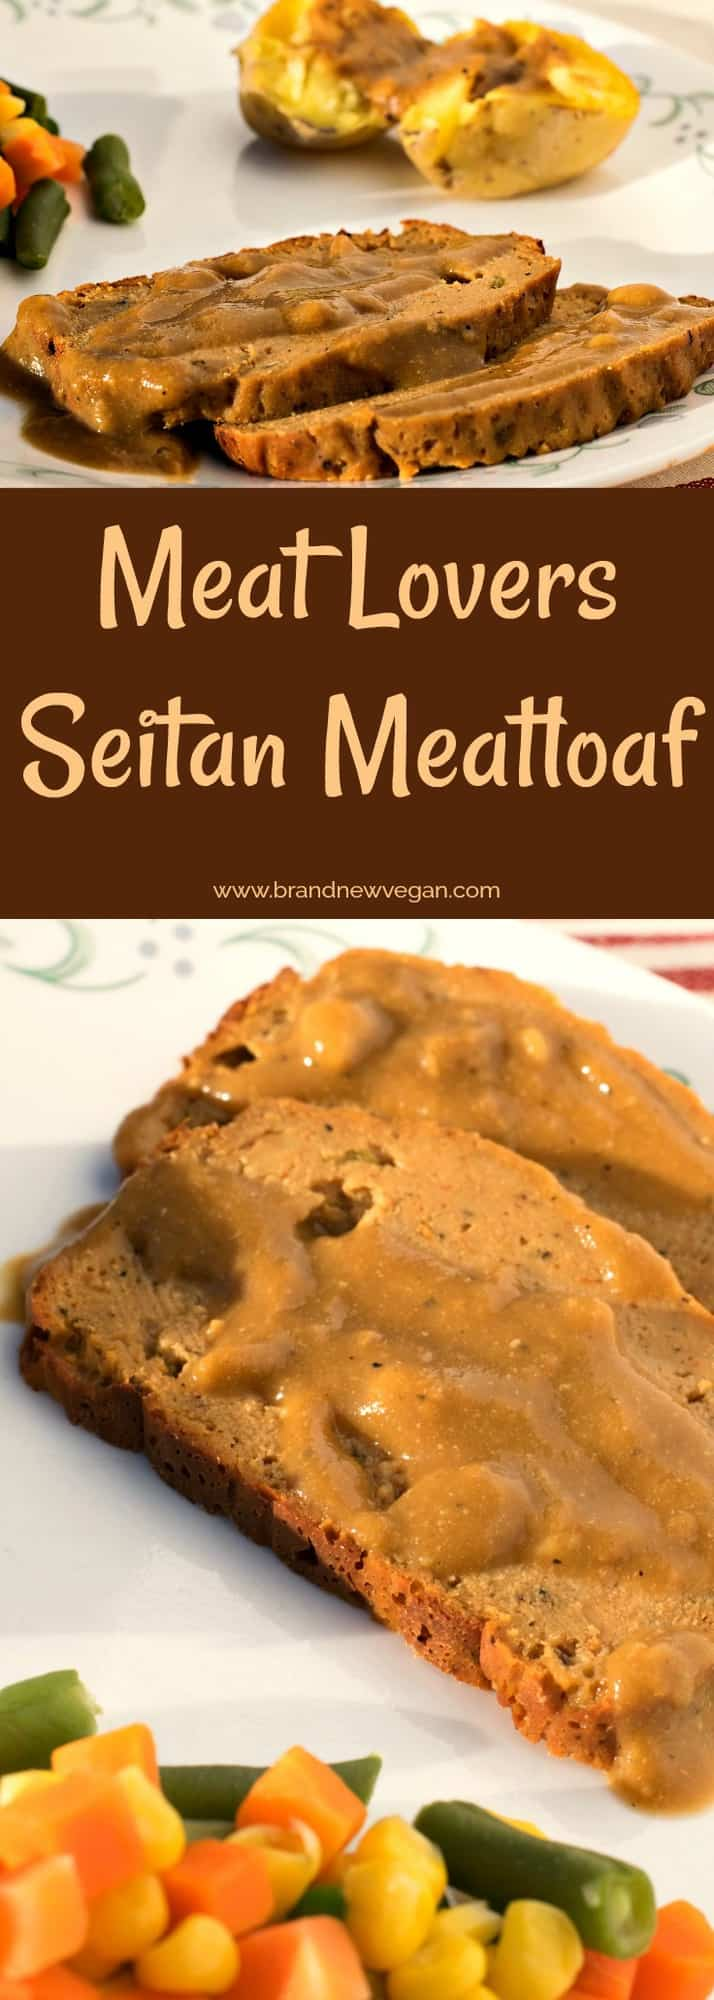 A meat lovers Seitan Meatloaf (only without the meat). Same great texture and flavor, but without all the saturated fat and cholesterol.  A holiday favorite!